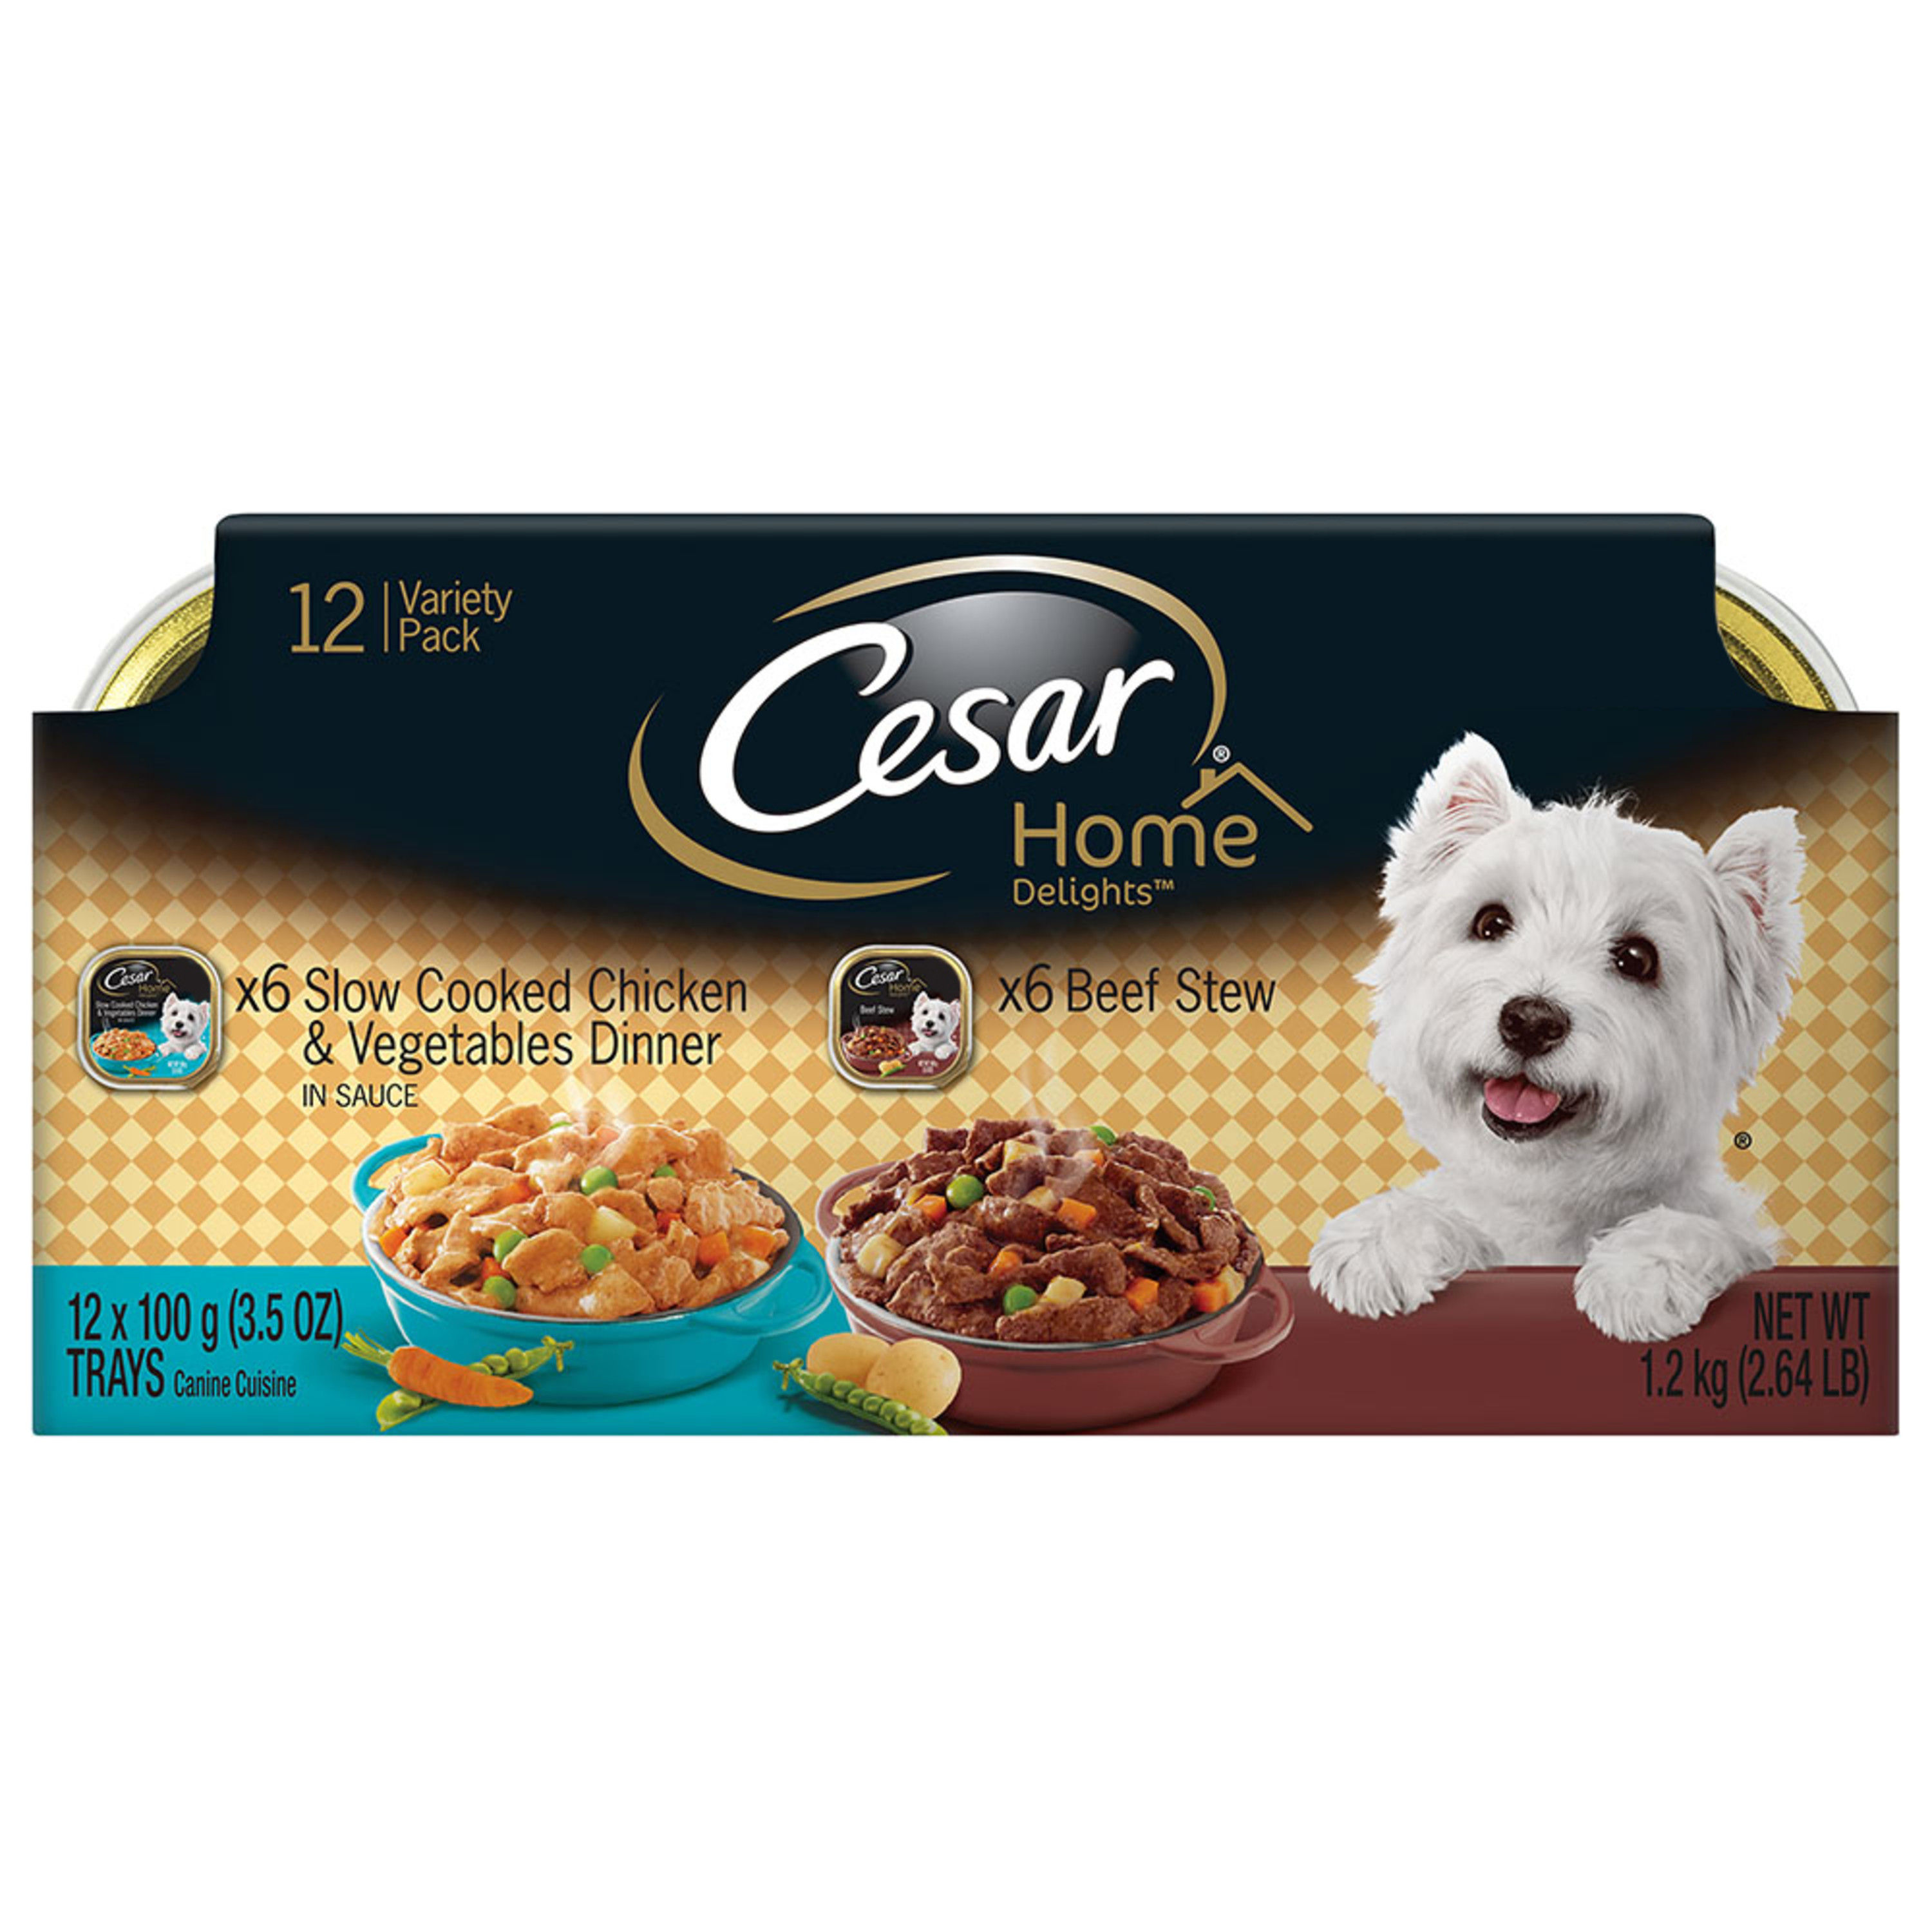 CESAR HOME DELIGHTS Wet Dog Food Chicken & Vegetables and Beef Stew Variety Pack, (12) 3.5 oz. Trays